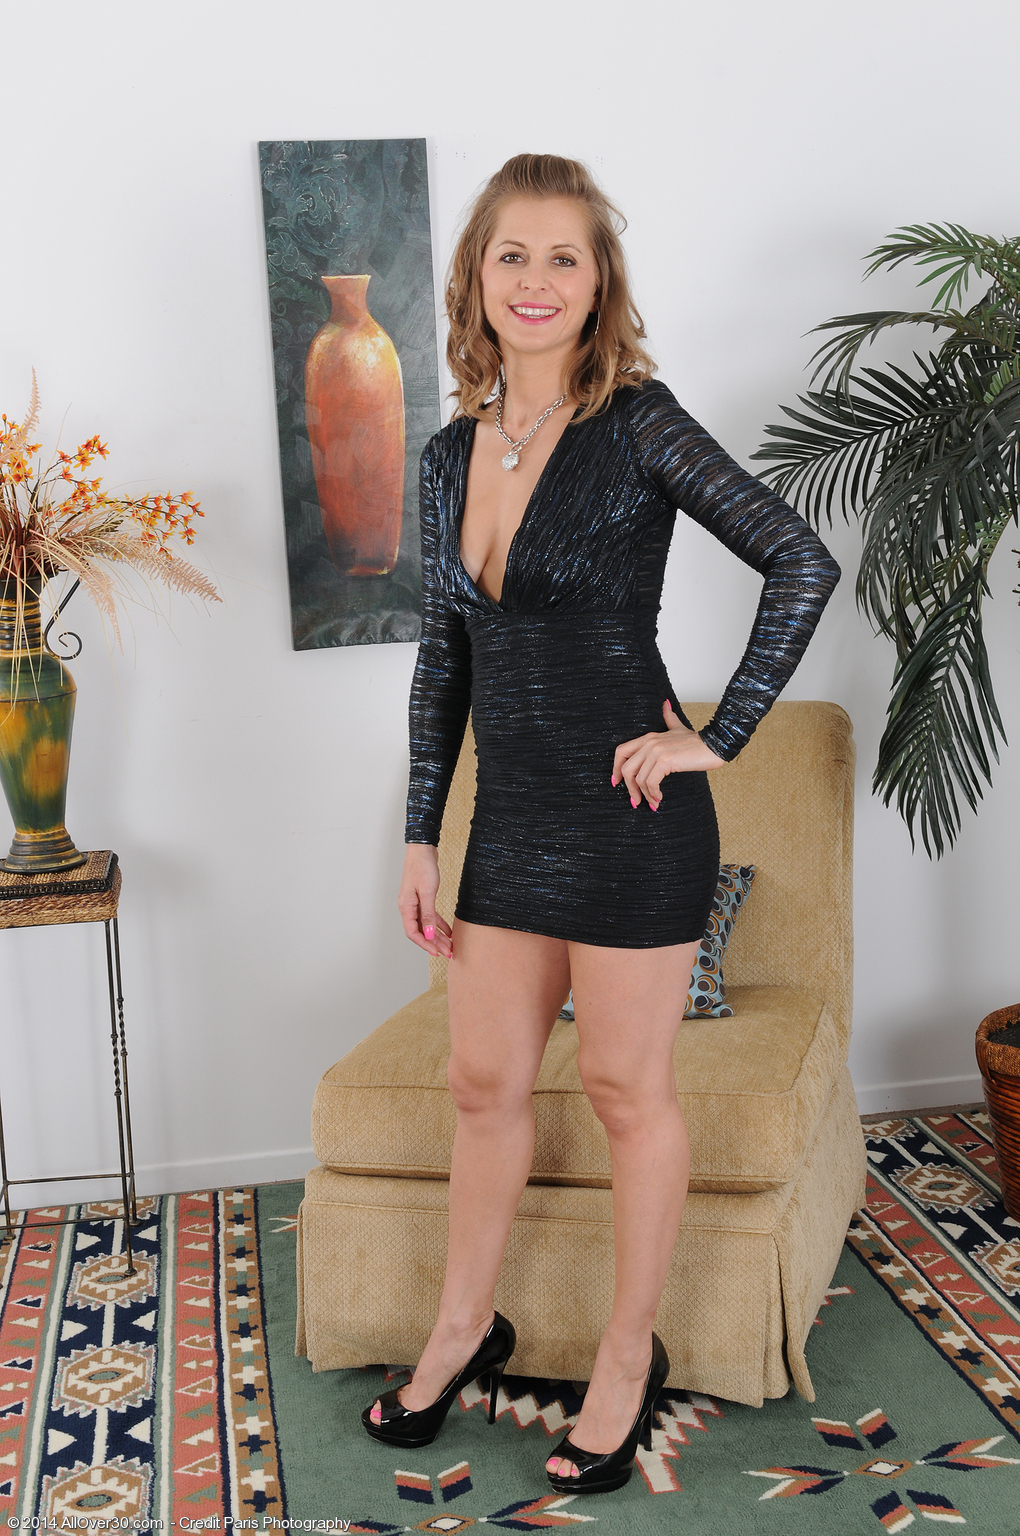 33 years old mature woman olga 3